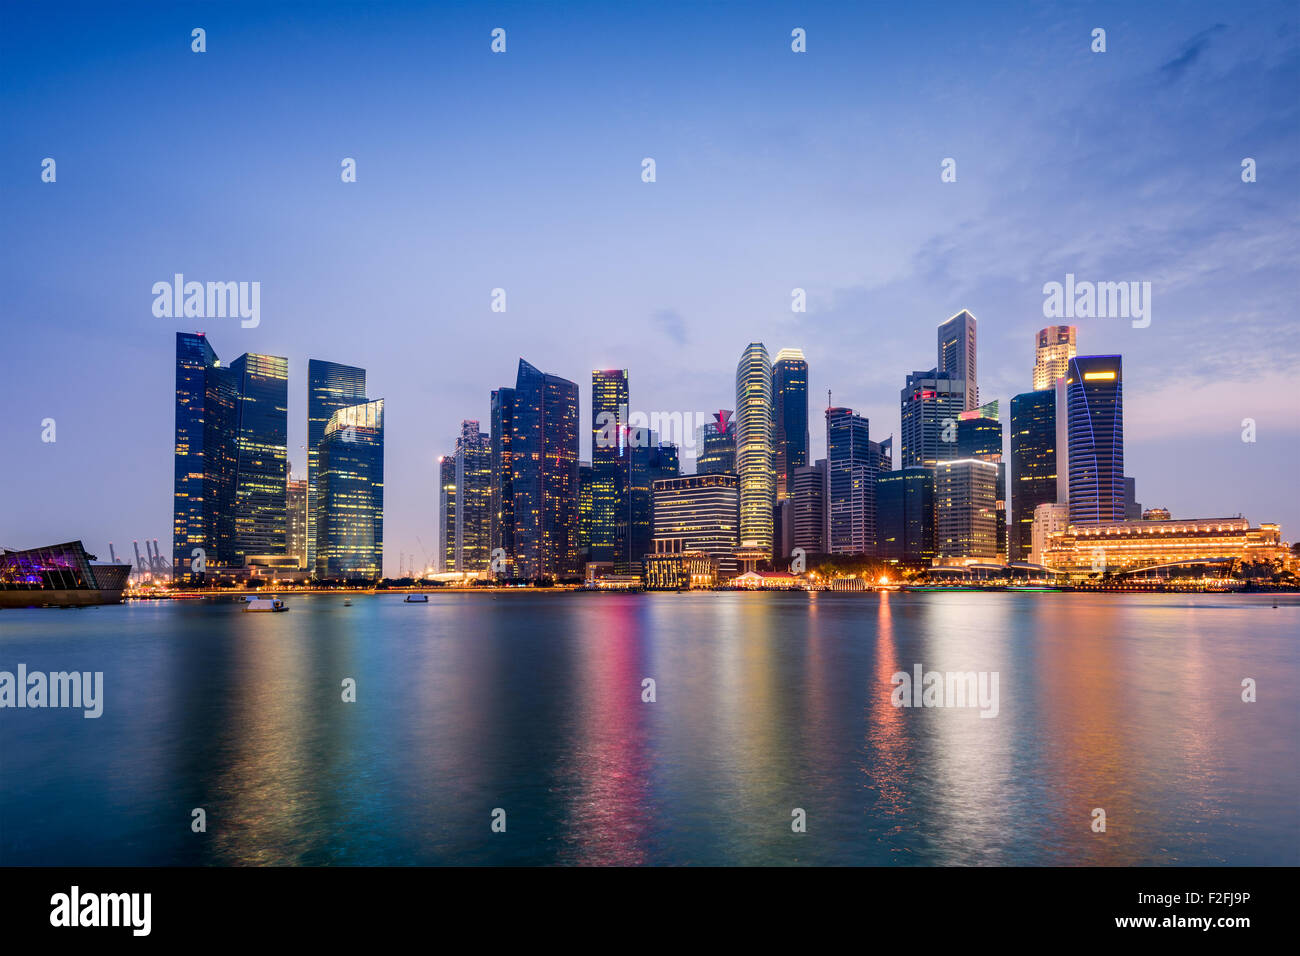 Singapore skyline on Marina Bay. - Stock Image